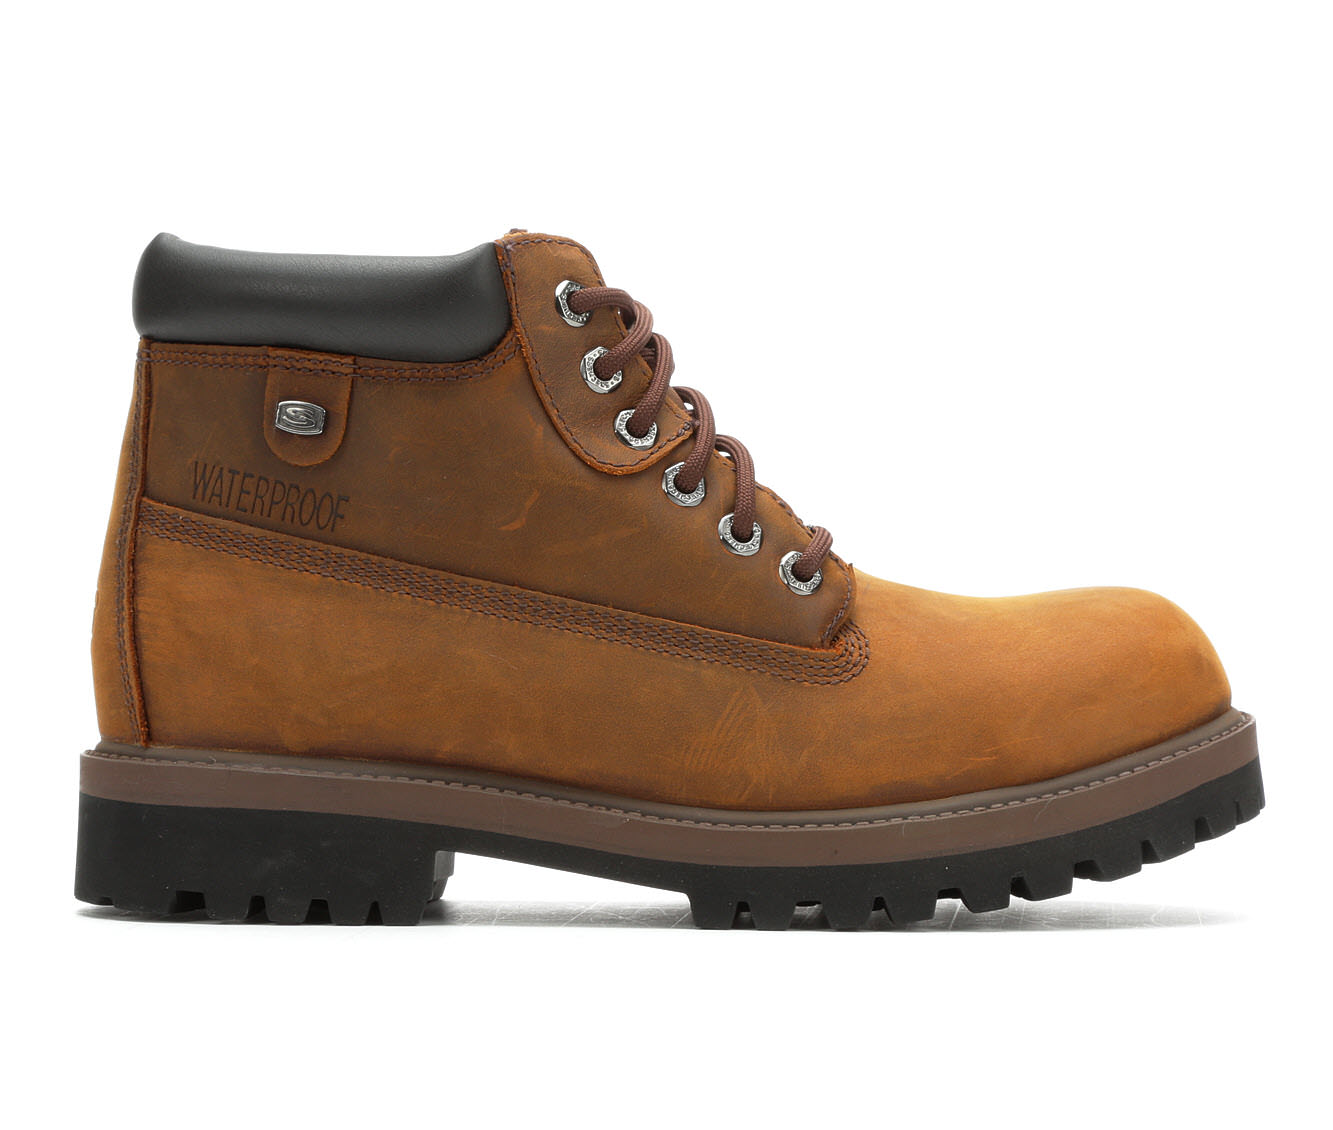 Skechers Verdict Waterproof 4442 Men's Boots (Brown Leather)